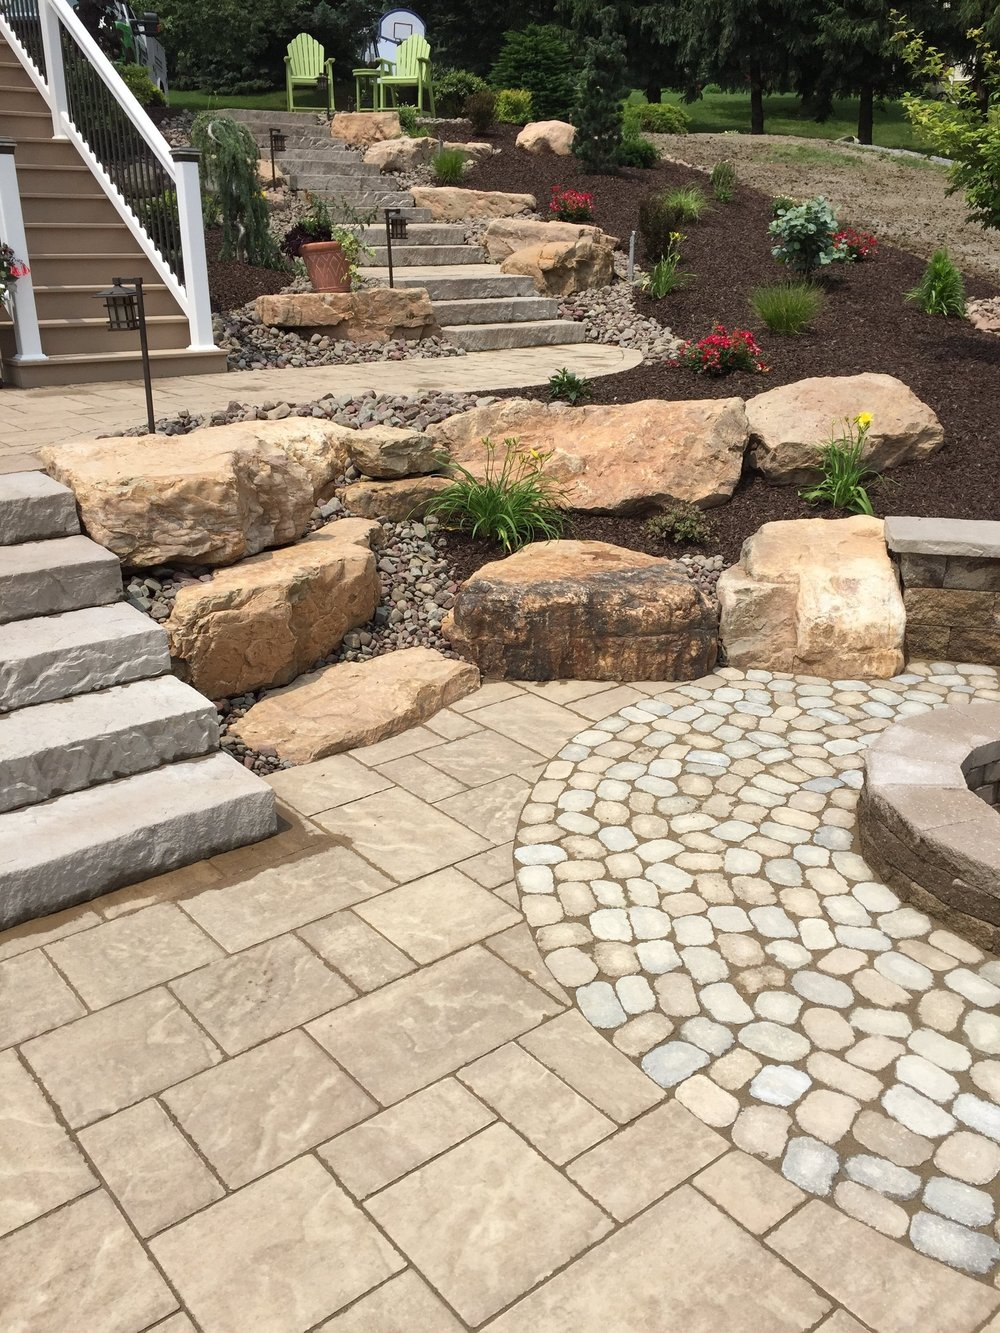 Expert landscape patio ideas in South Whitehall, PA